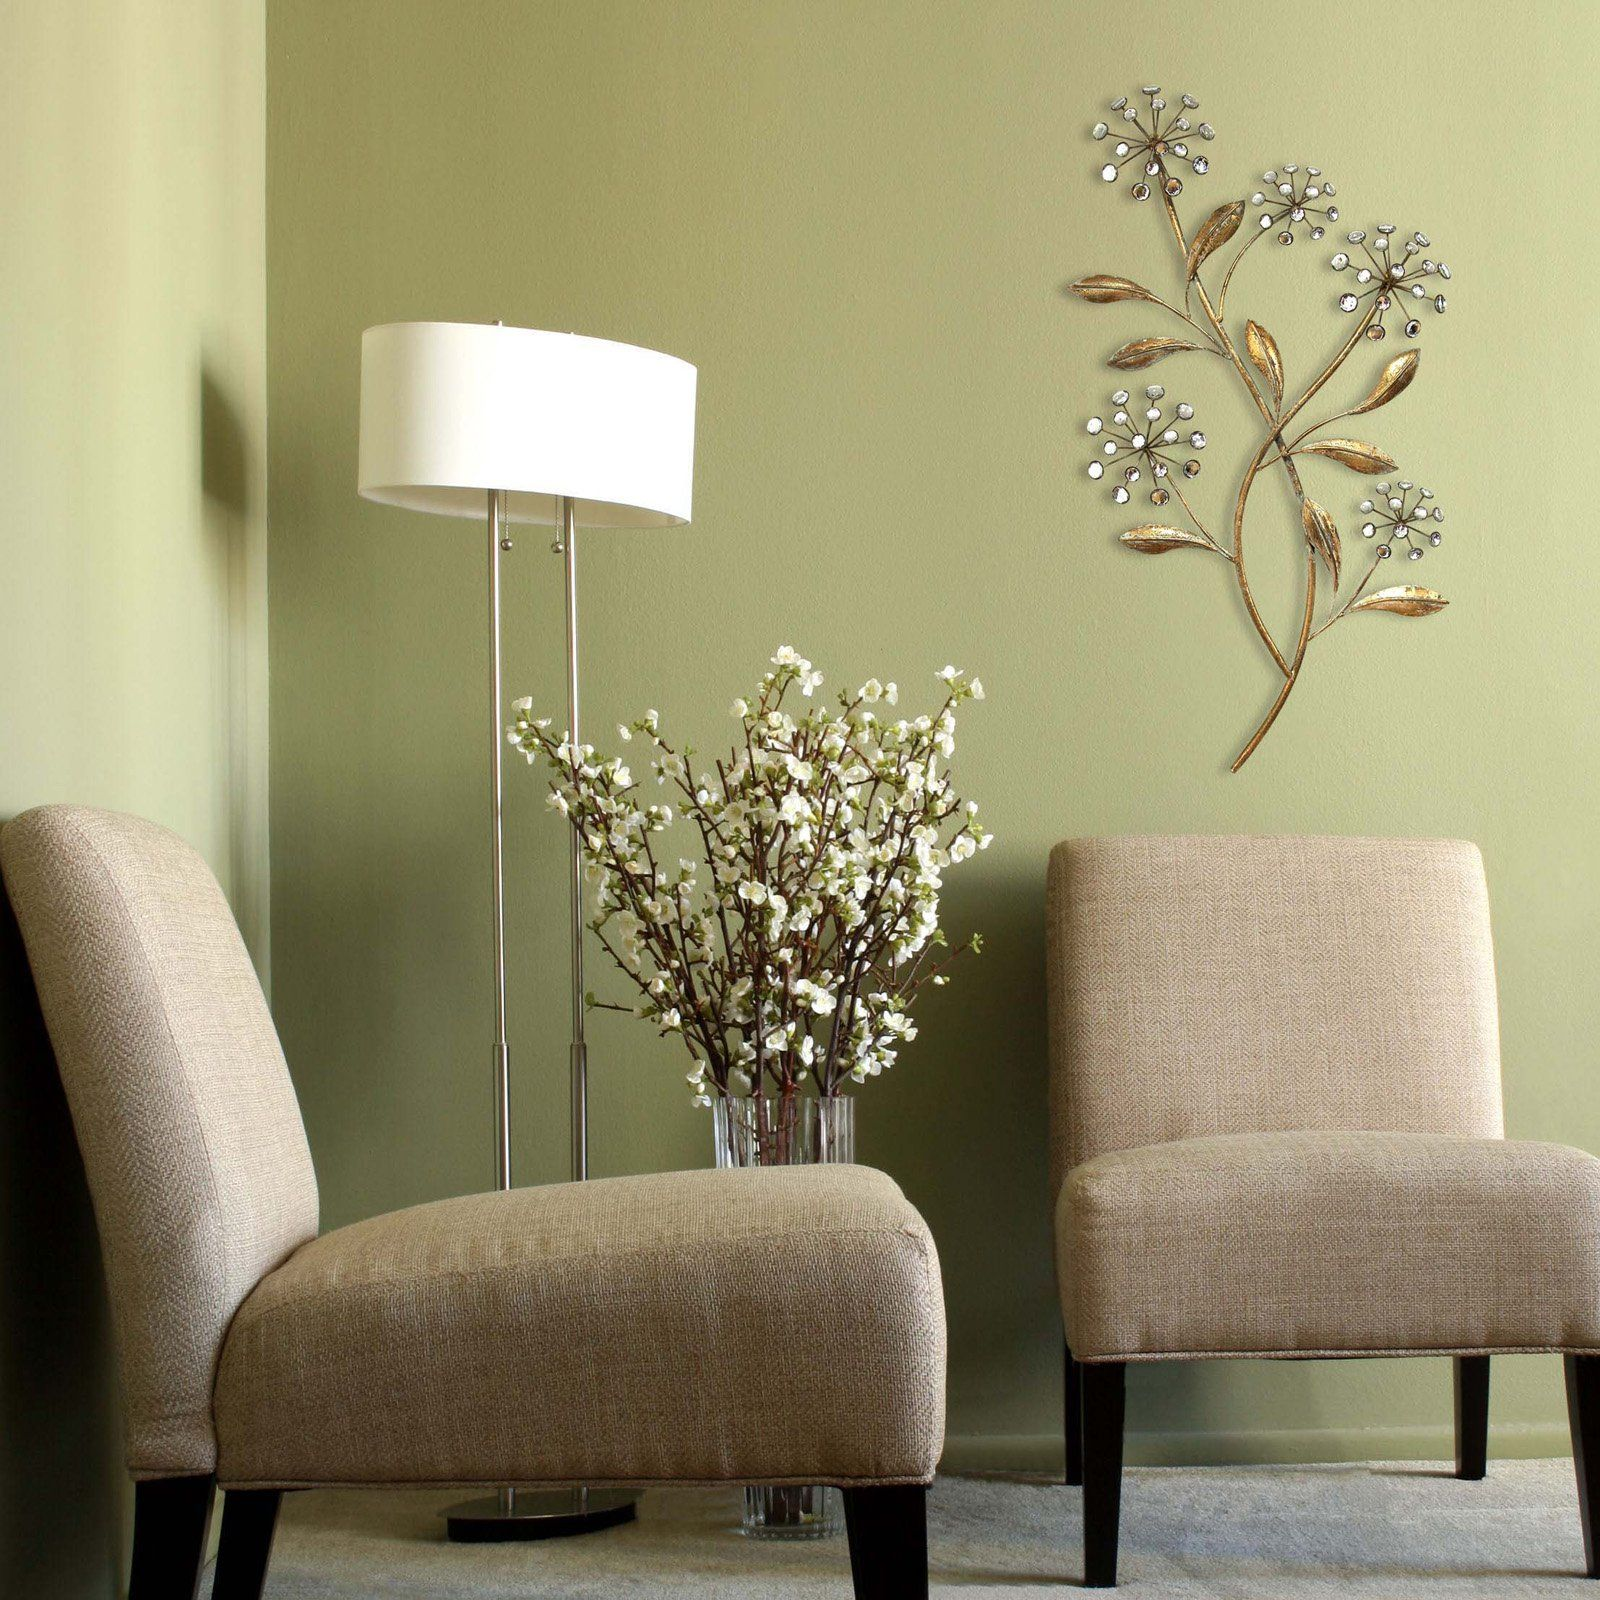 Stratton home floral bursts wall sculpture s03903 products stratton home floral bursts wall sculpture s03903 amipublicfo Choice Image